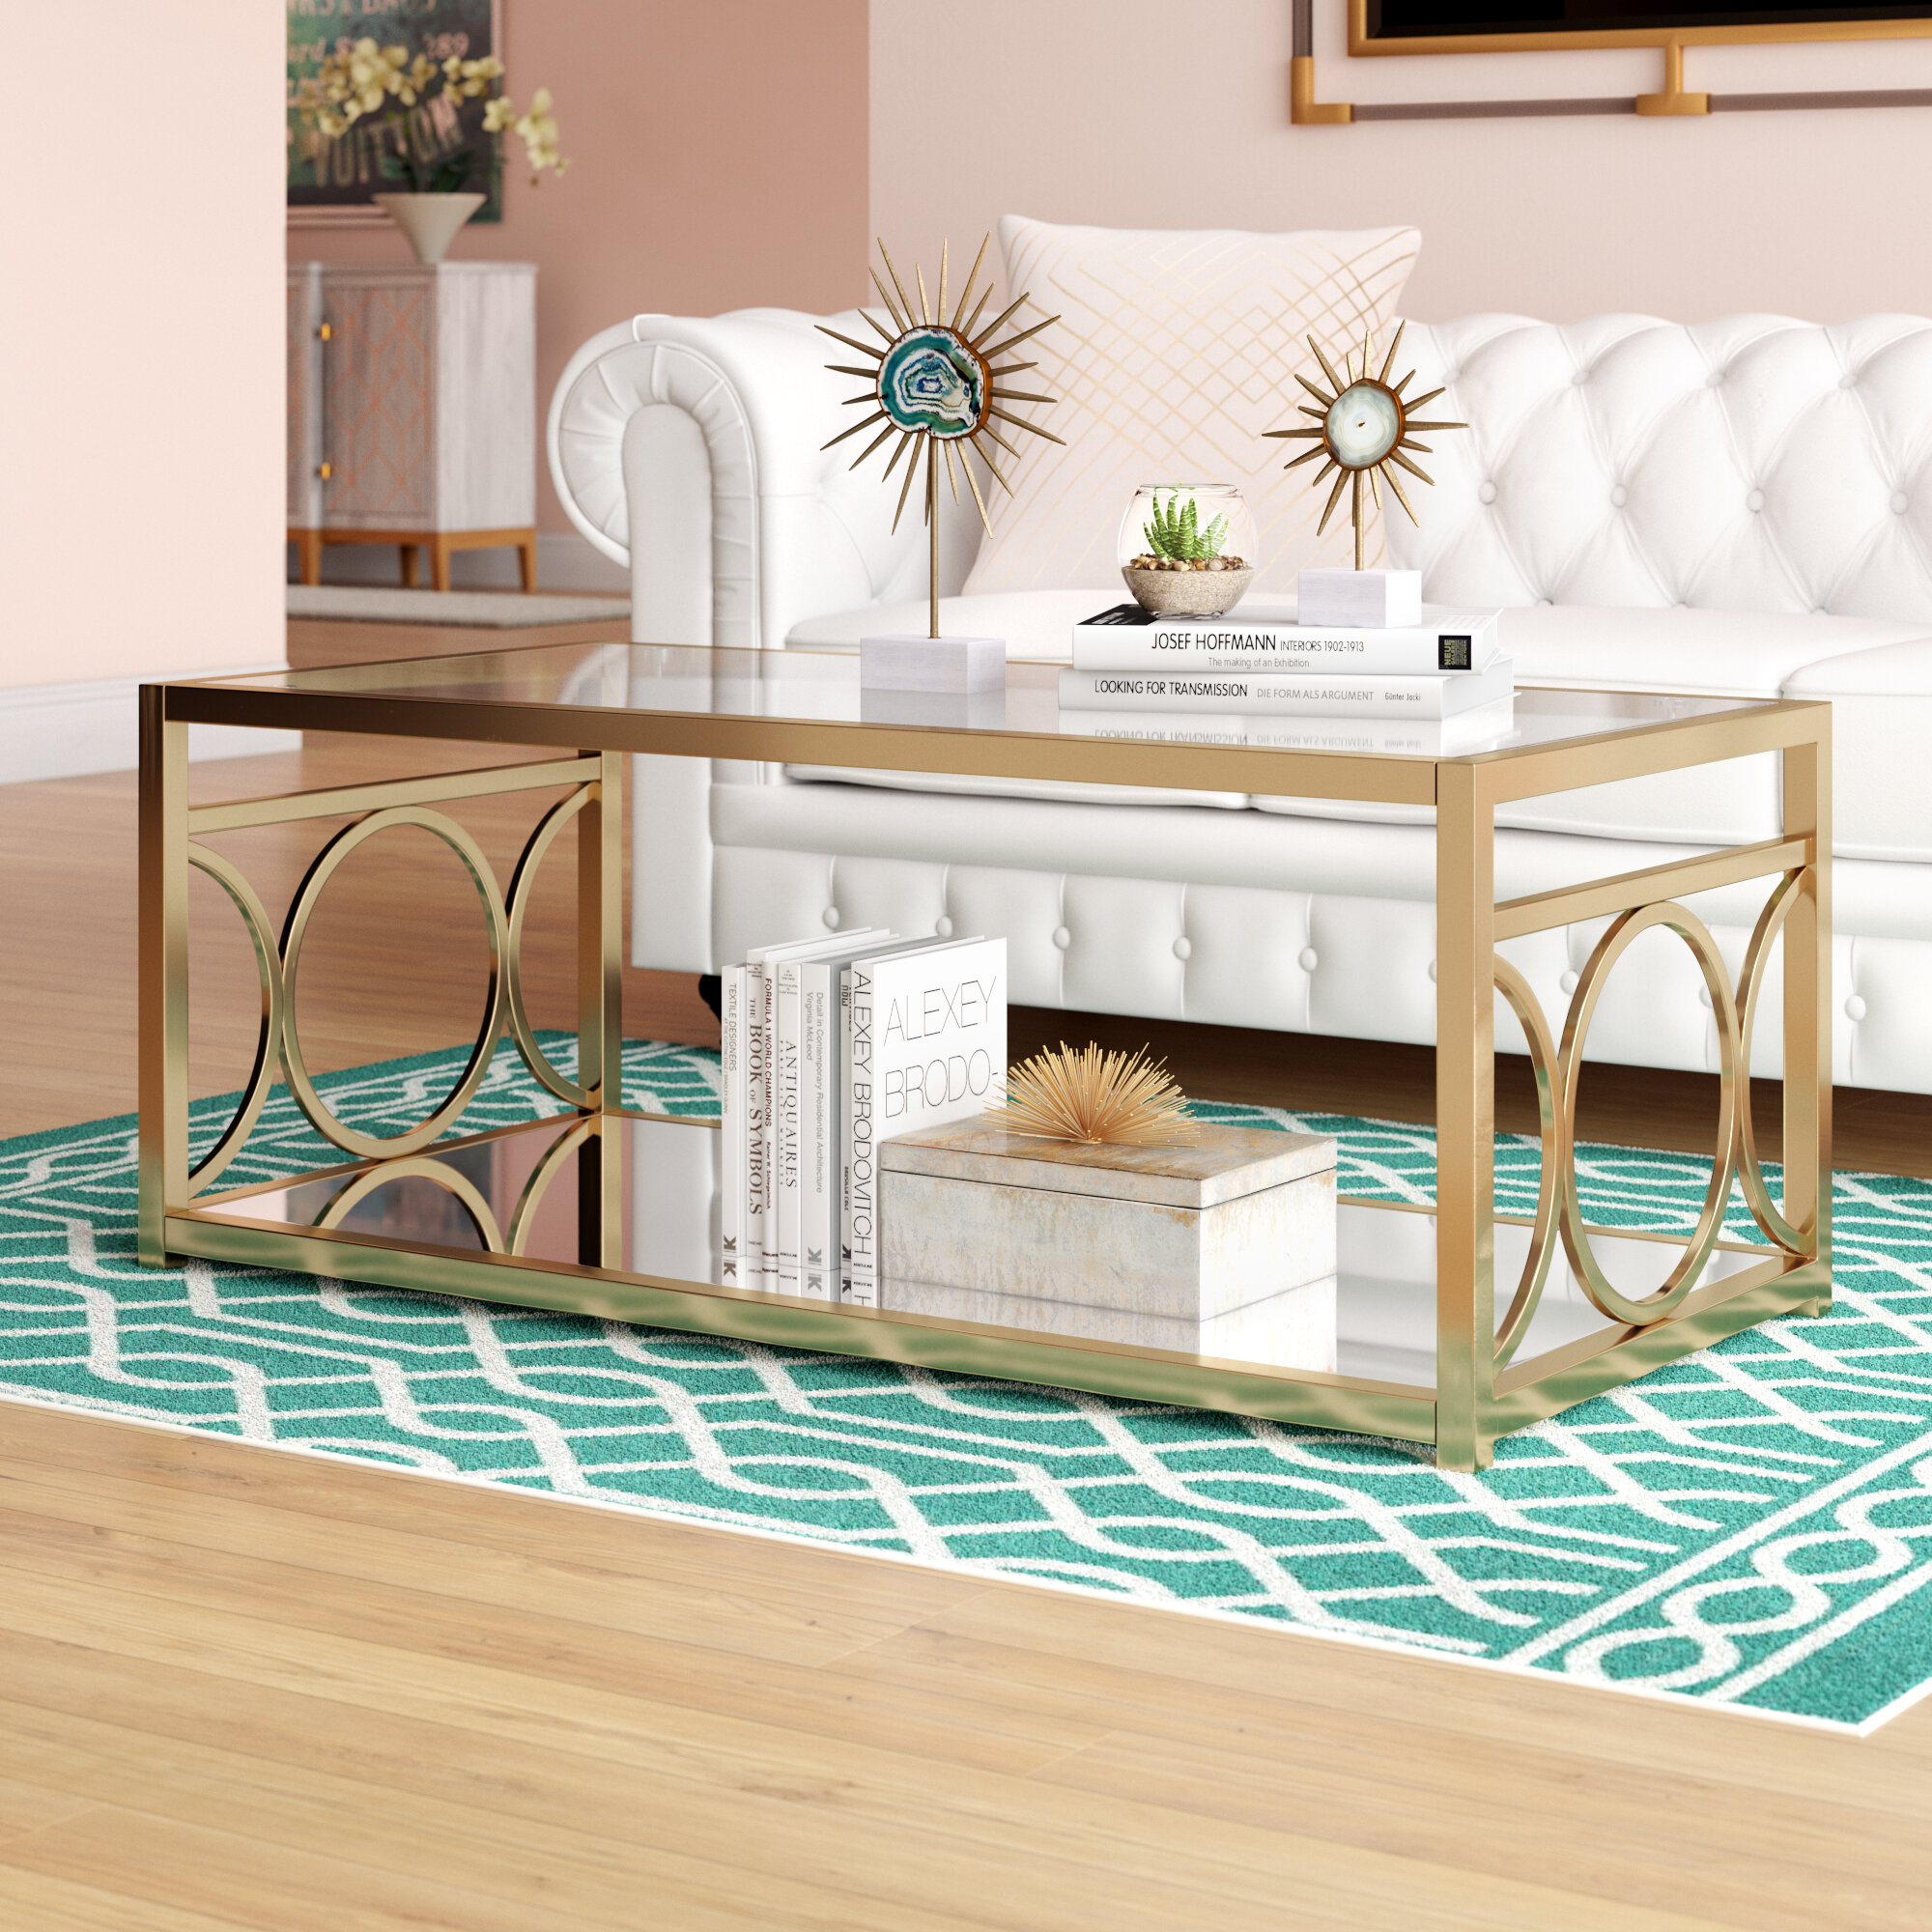 Glass Modern Contemporary Coffee Tables Free Shipping Over 35 Wayfair [ 2000 x 2000 Pixel ]